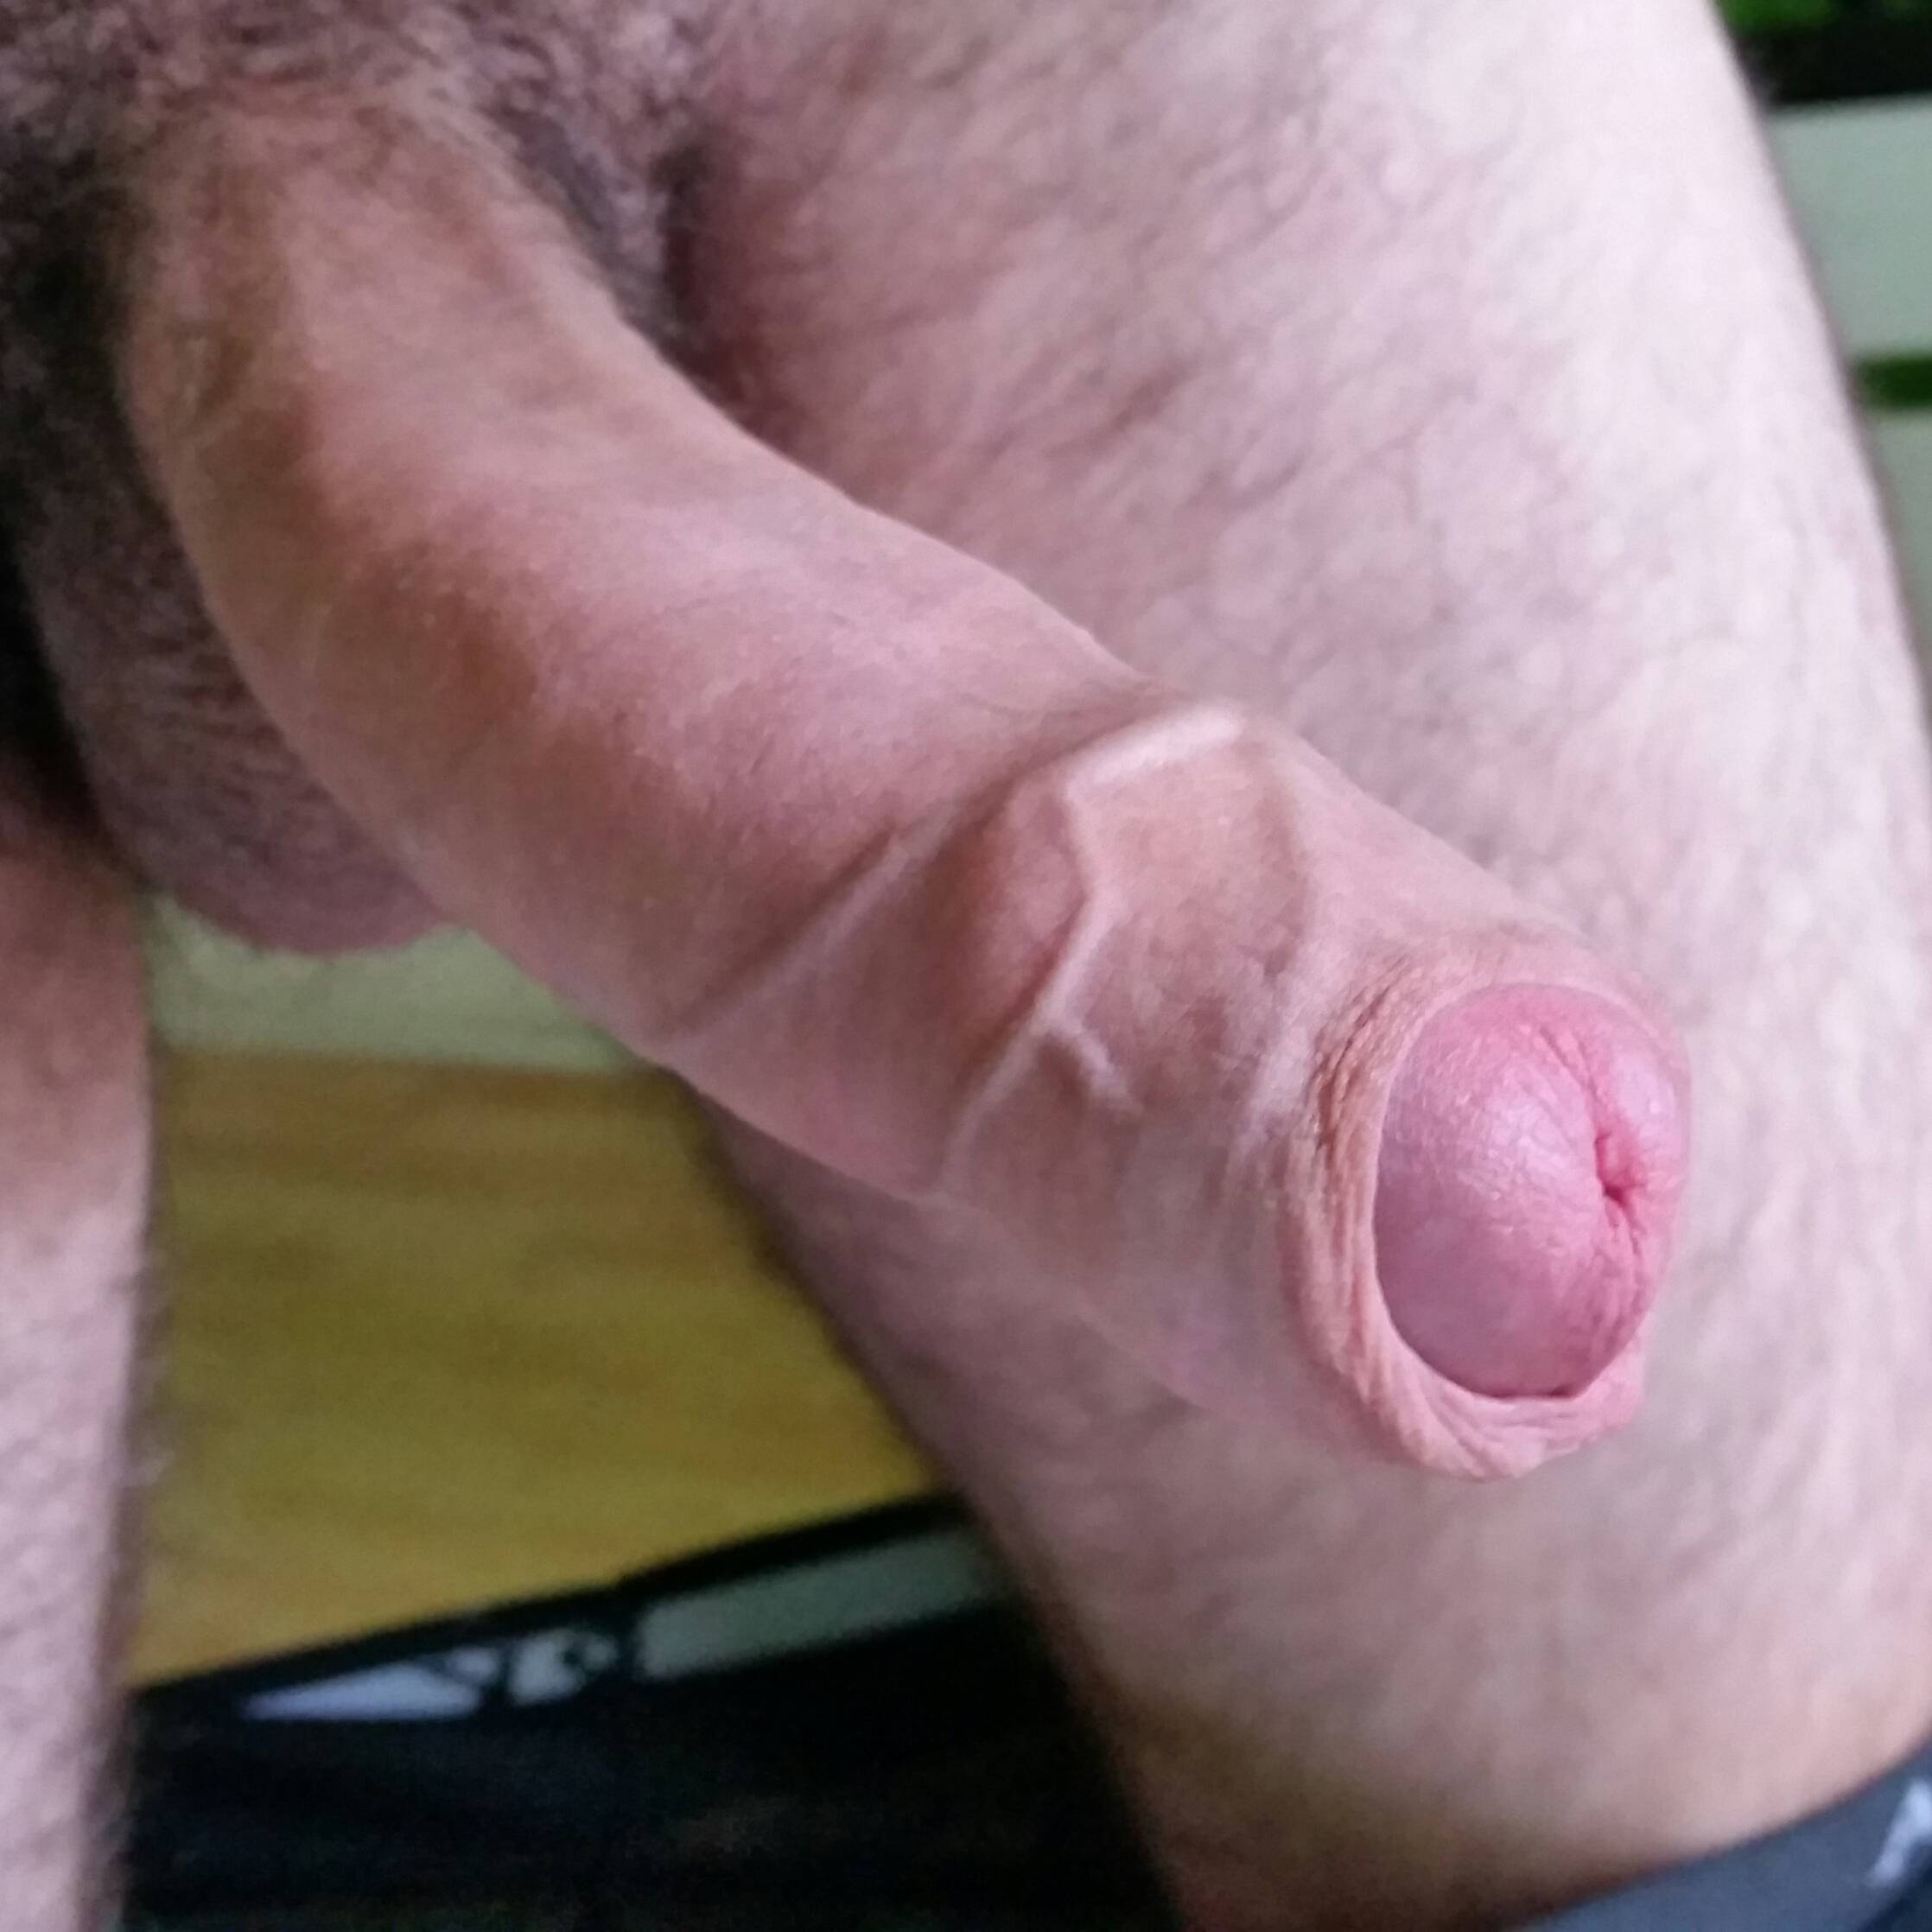 Thicker or longer penis